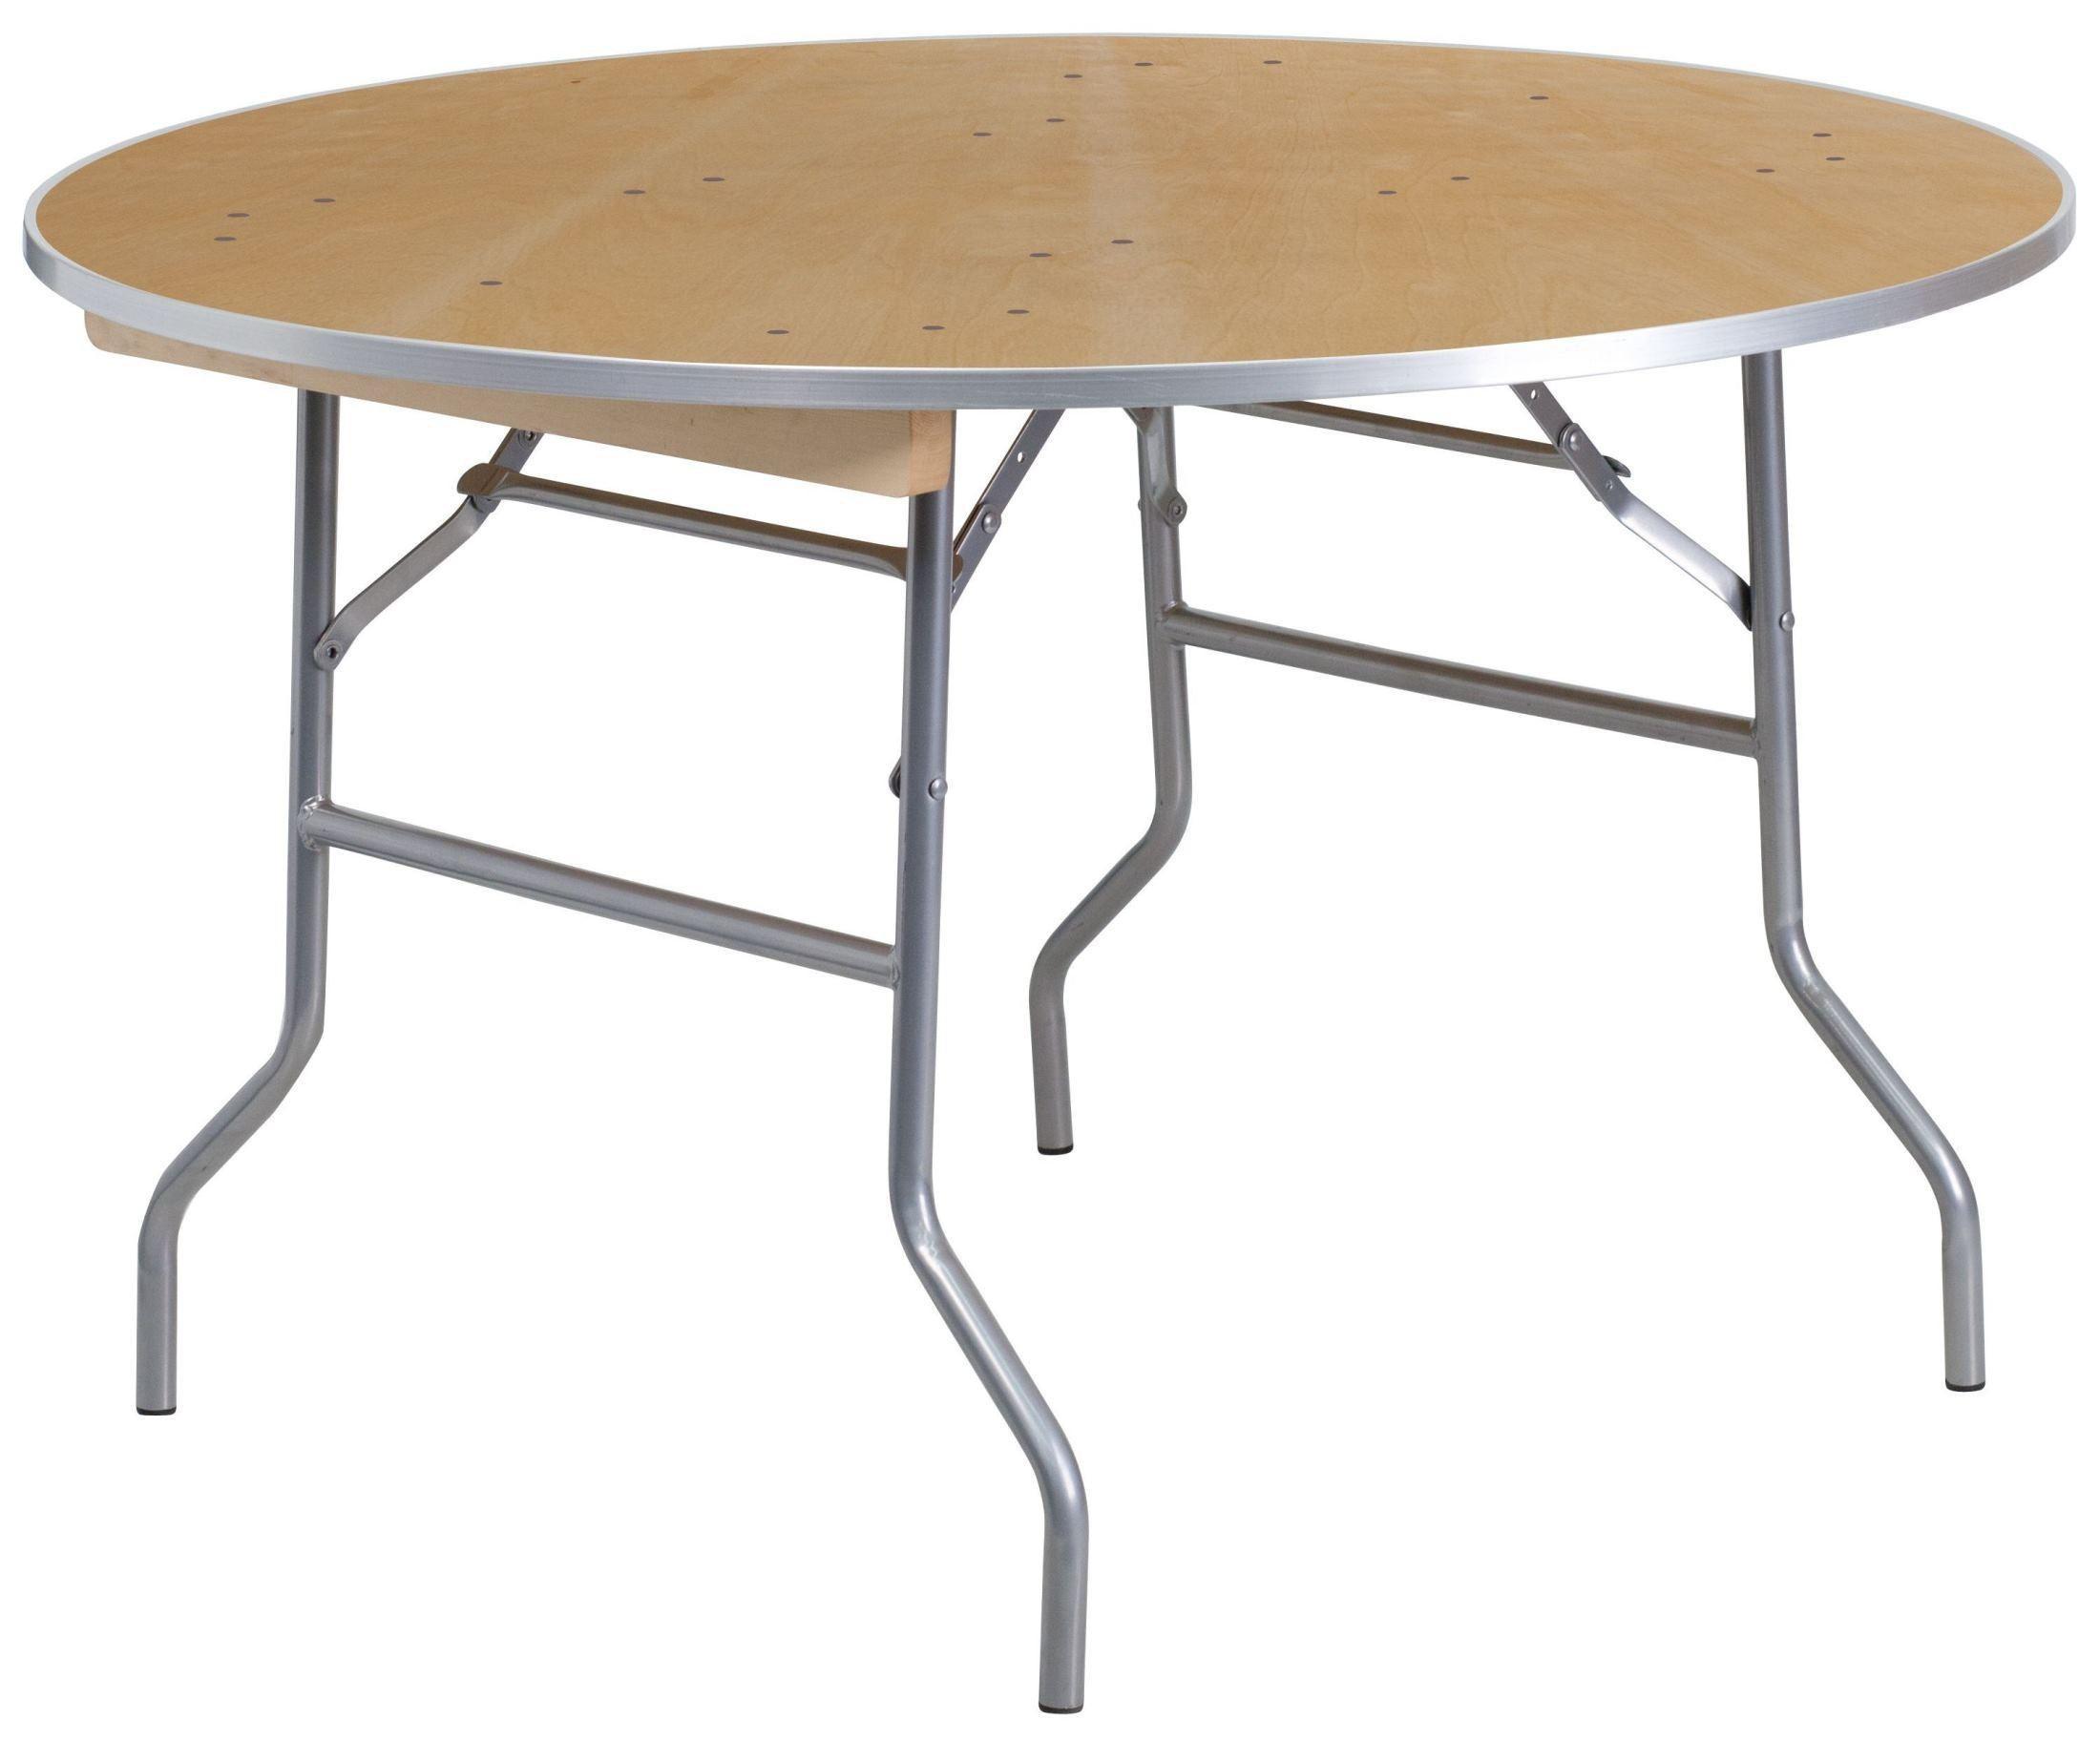 48 Round Heavy Duty Birchwood Folding Banquet Table From